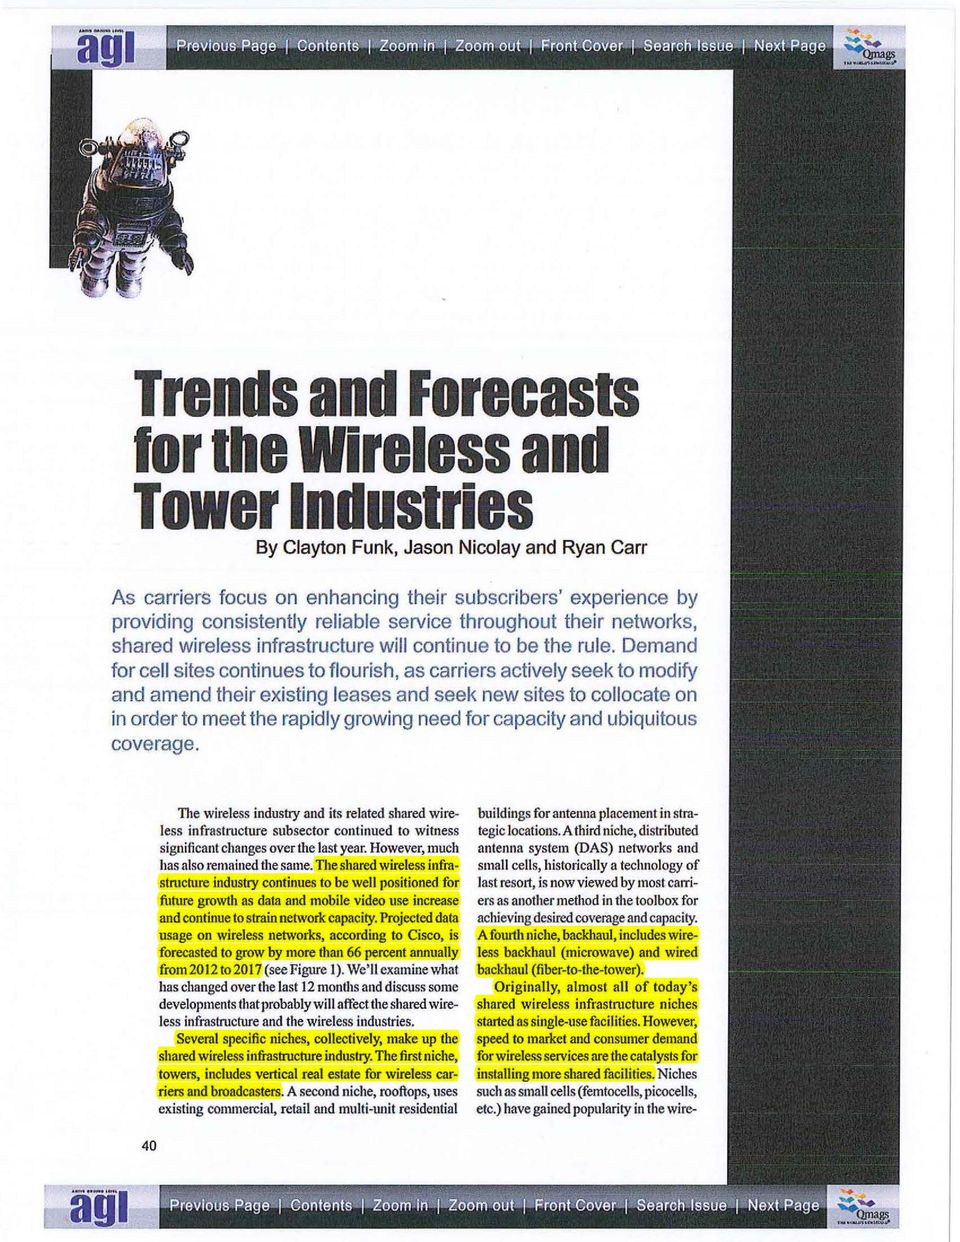 Demand for cell sites continues to flourish, as carriers actively seek to modify and amend their existing leases and seek new sites to collocate on in order to meet the rapidly growing need for